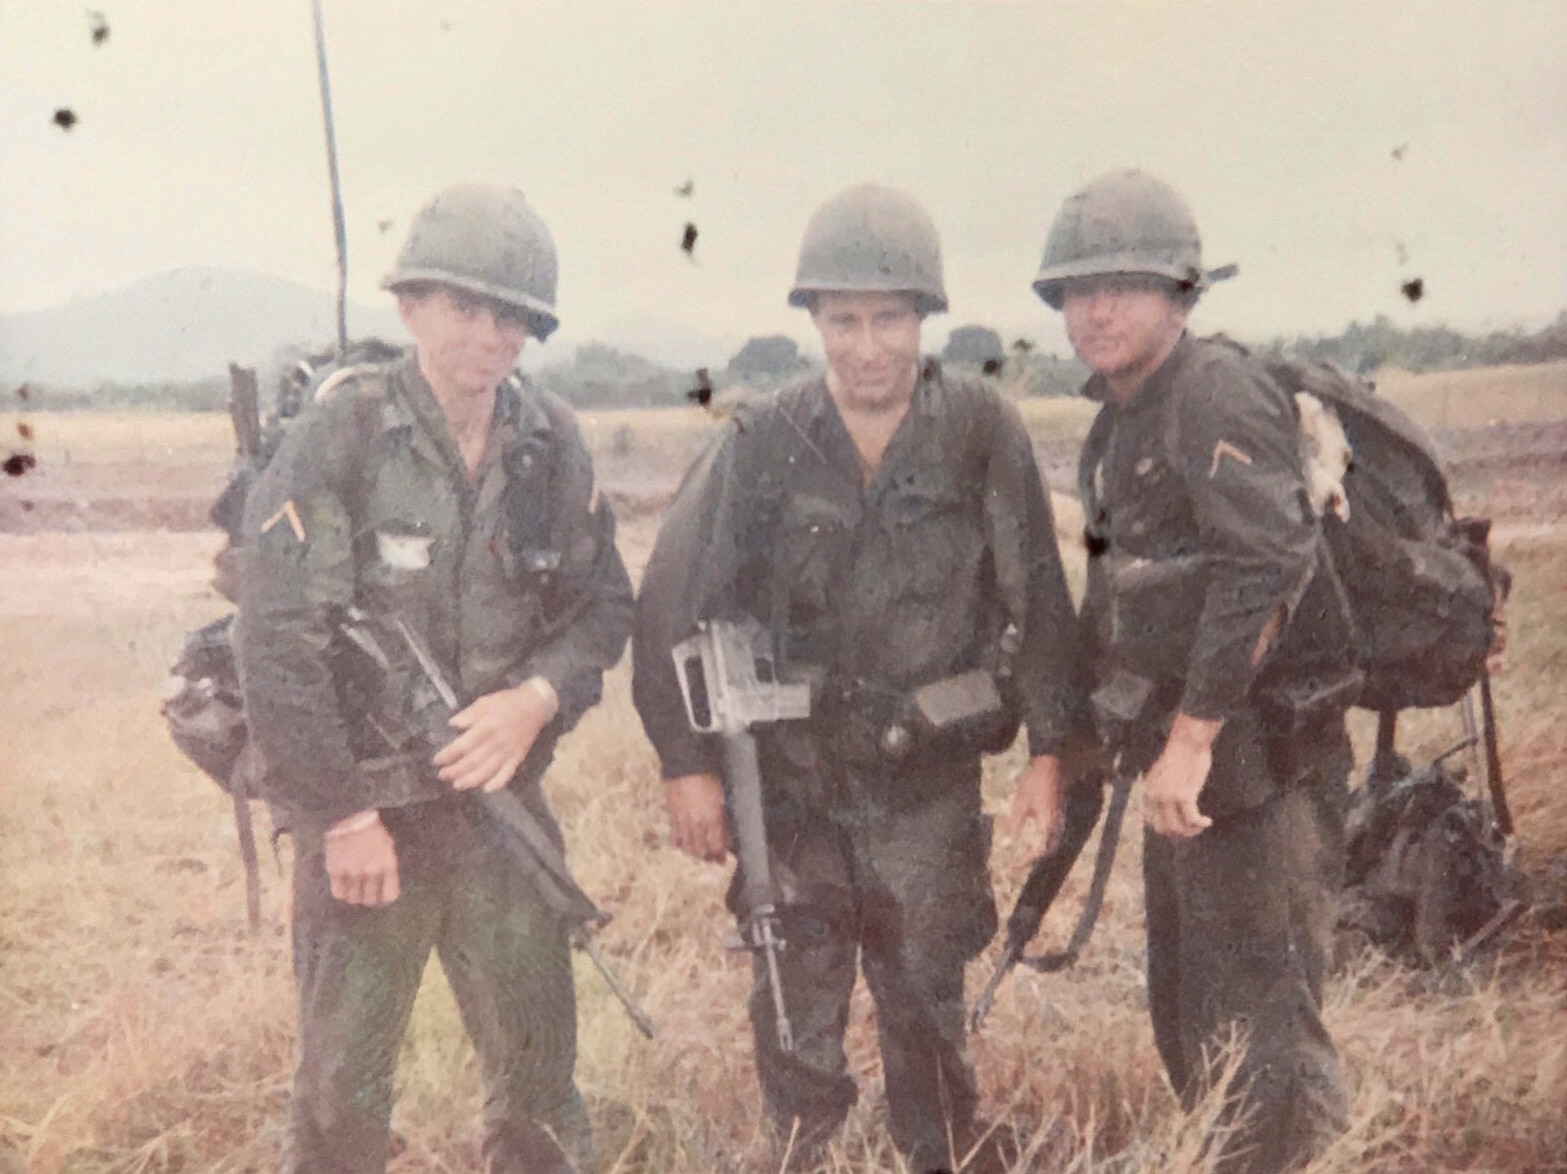 Dennis Stout (on right) in Vietnam in 1967